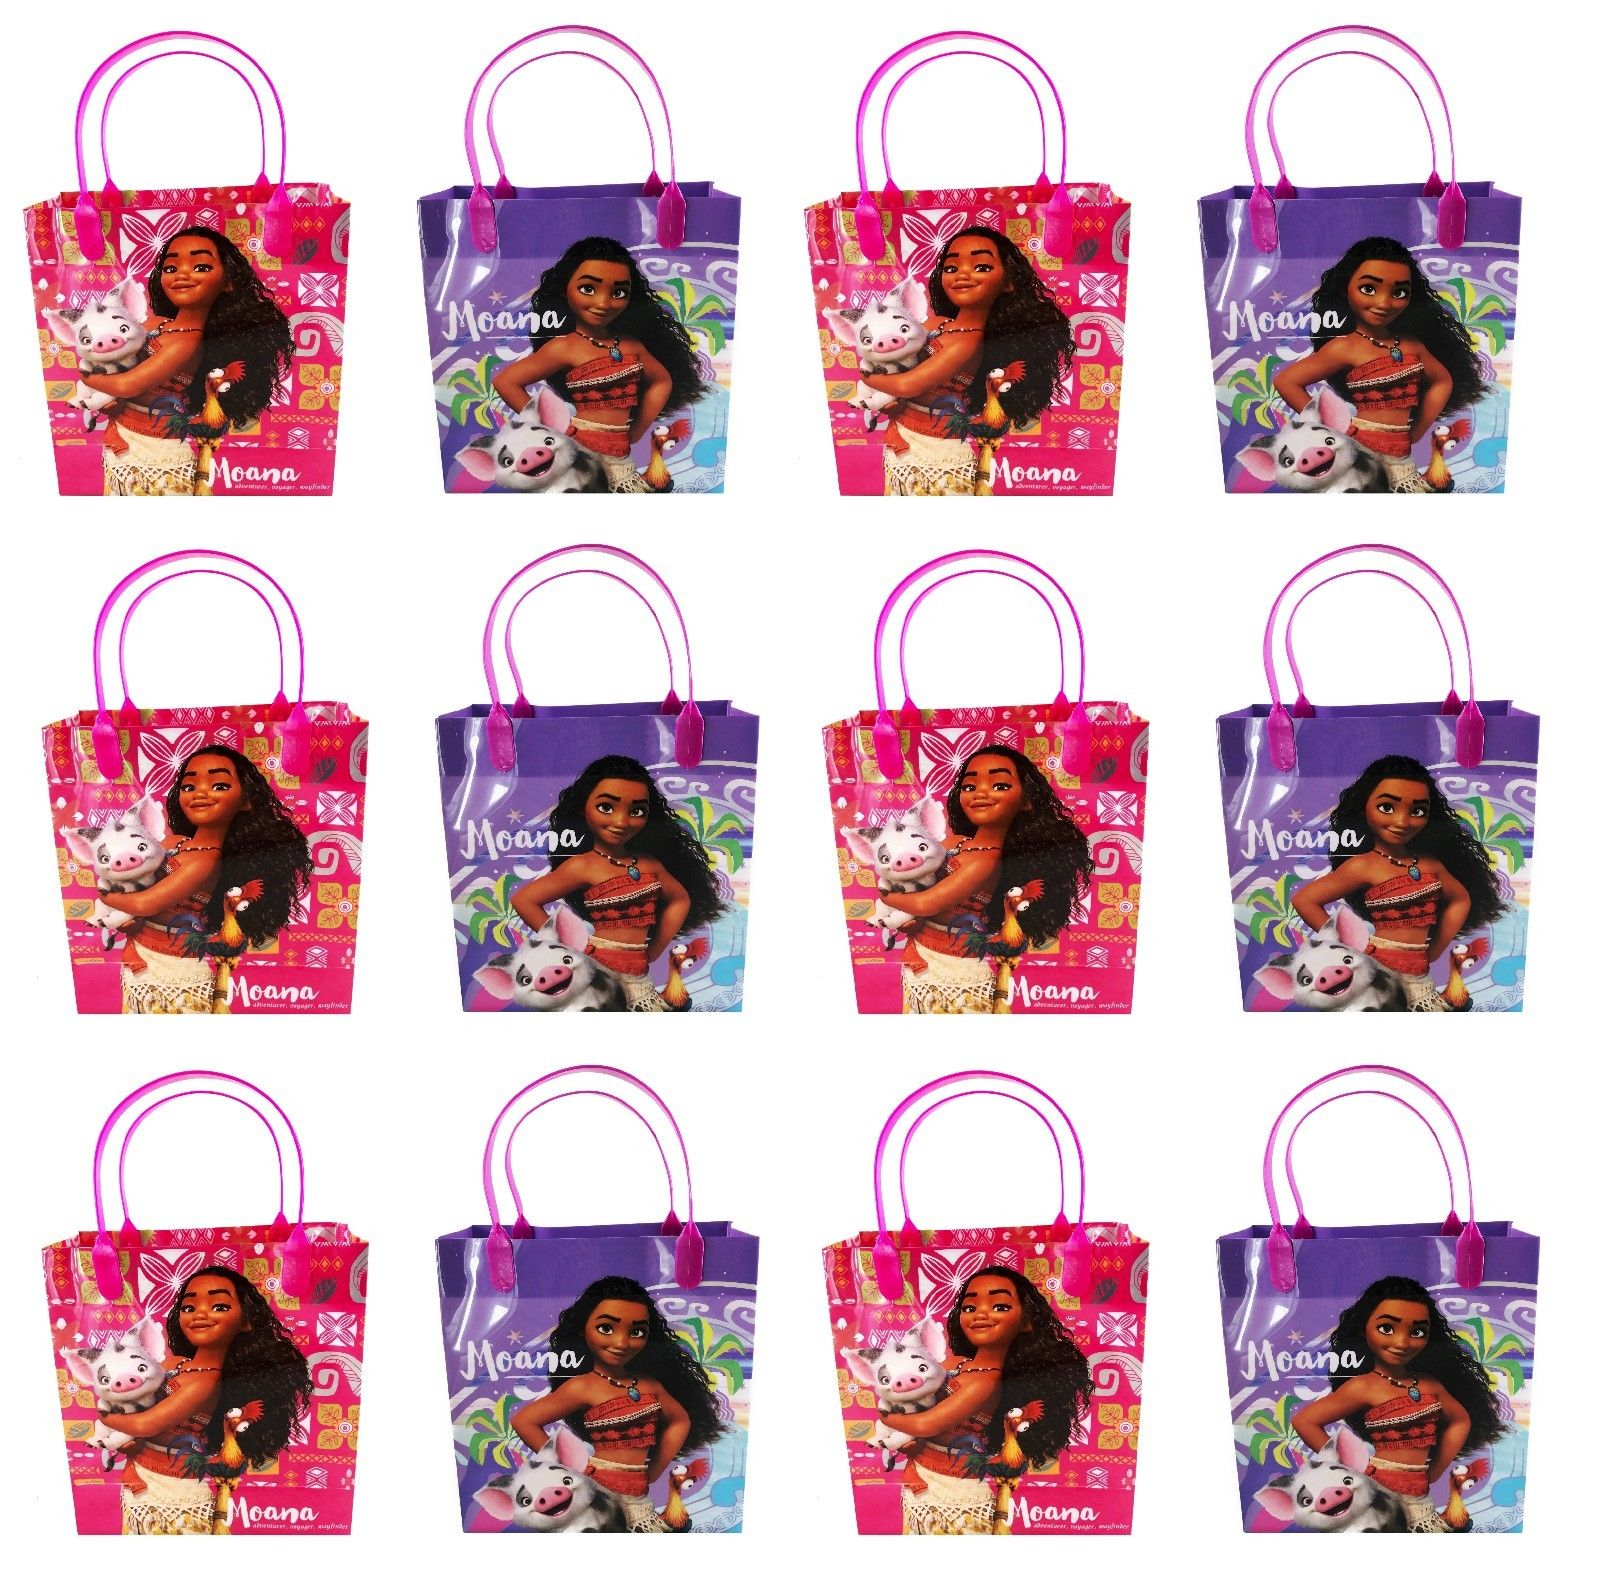 12x Moana Goodie Gift Bags